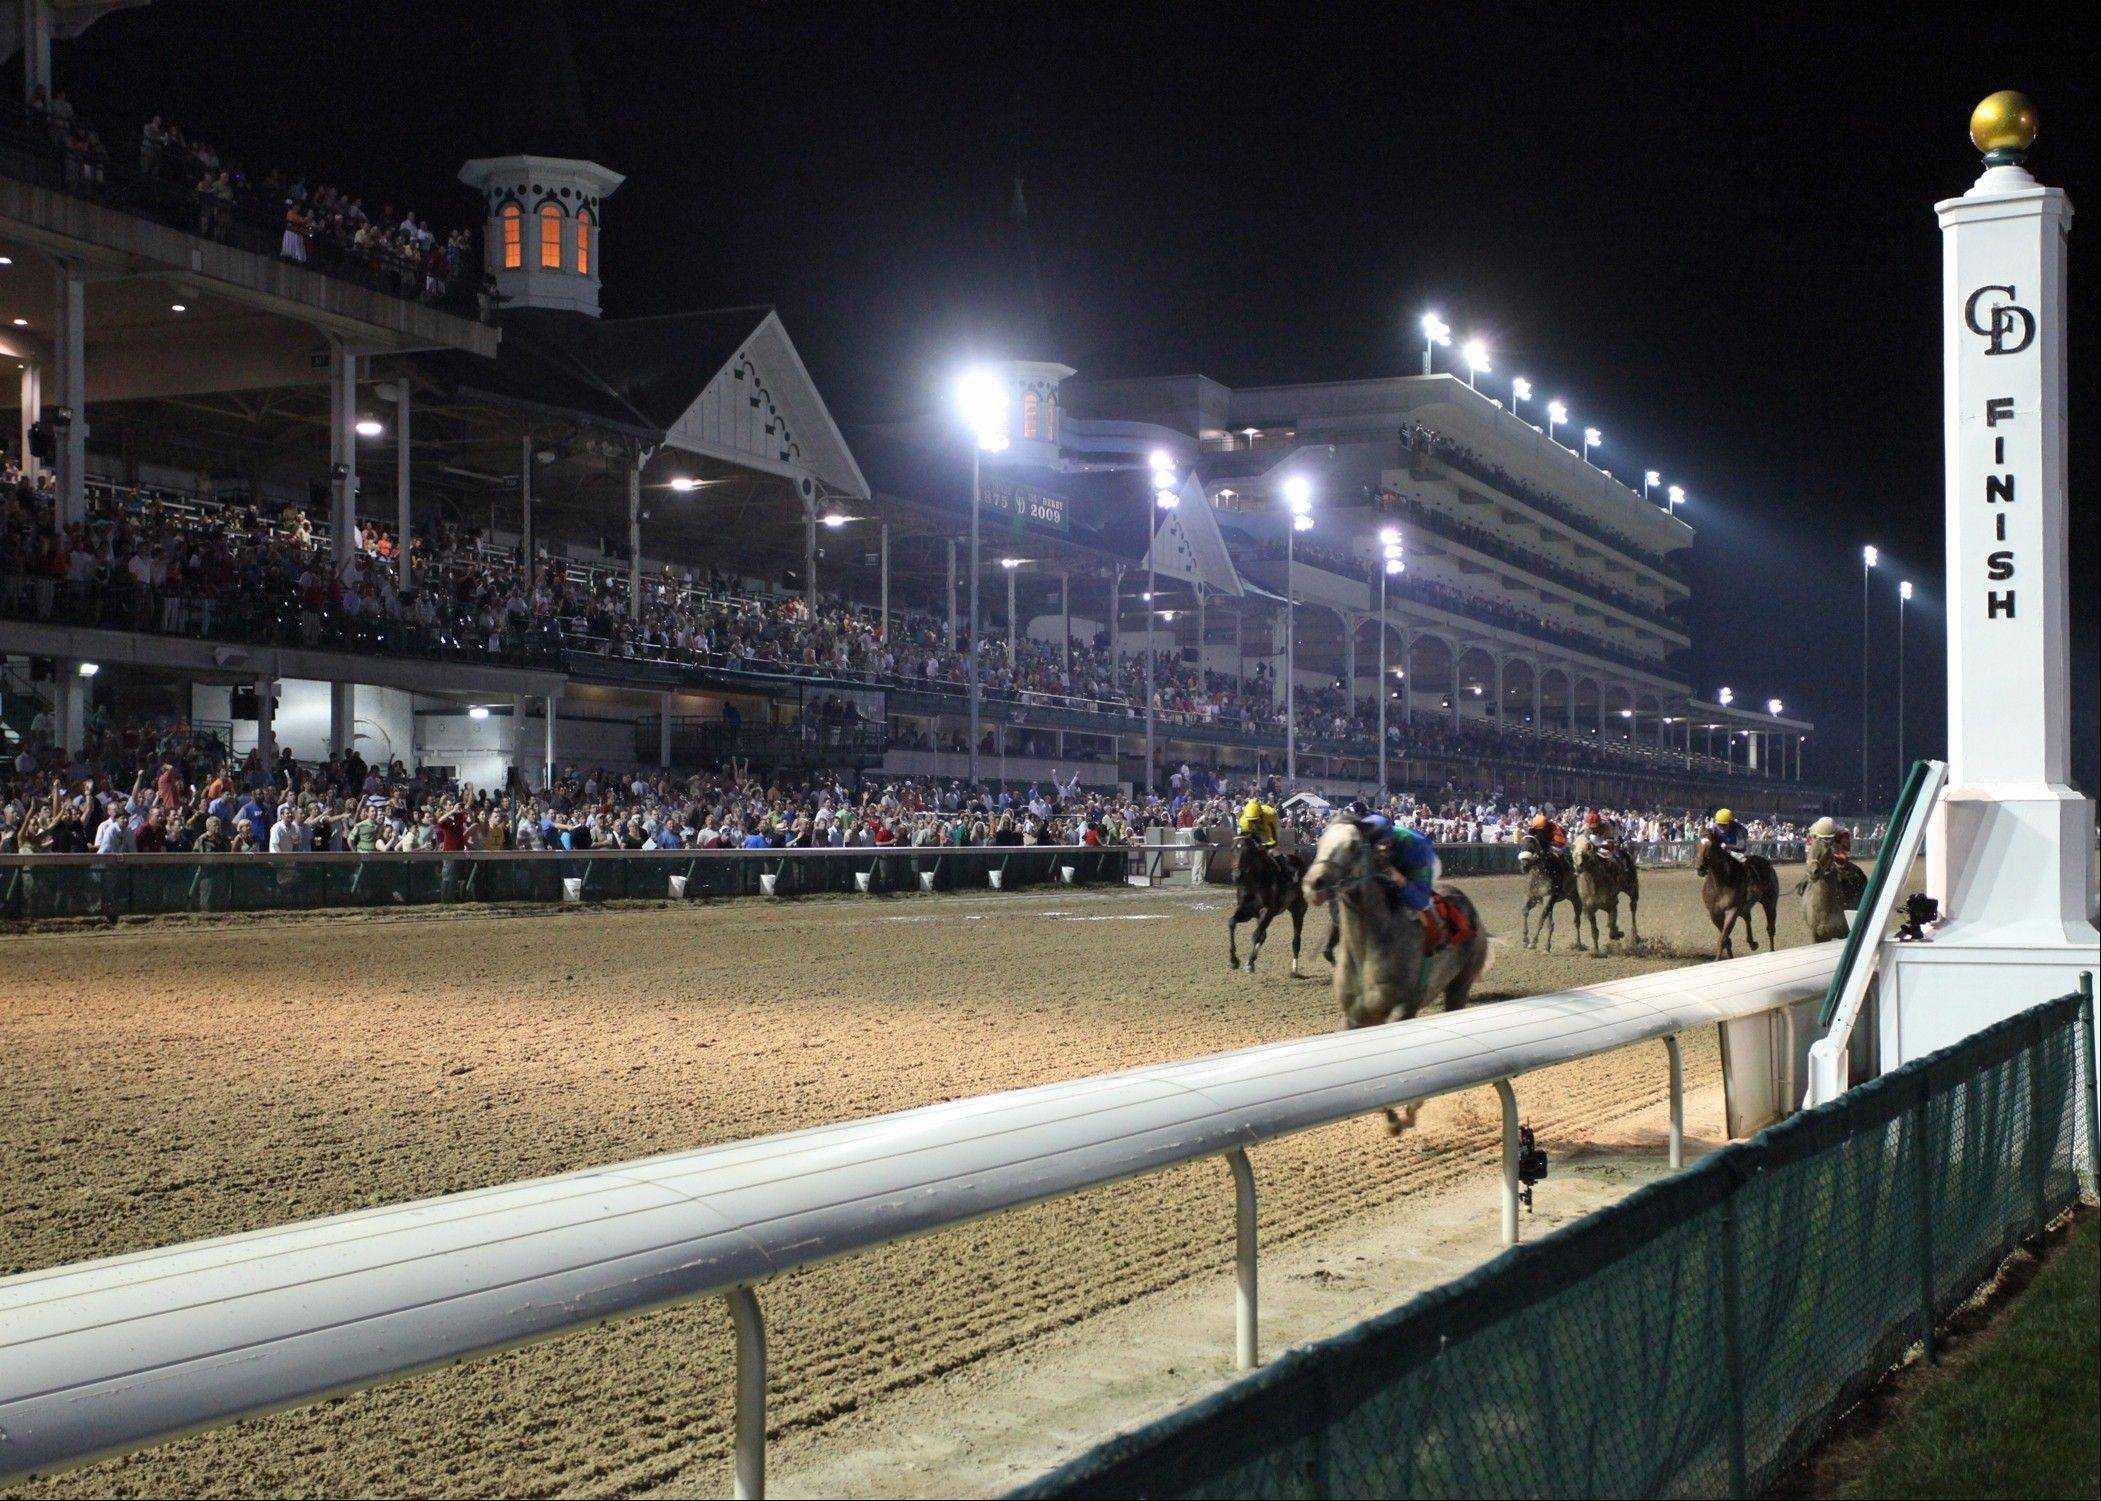 Arliington Park may seek permission to have night races like Churchill Downs has in Louisville, Ky.